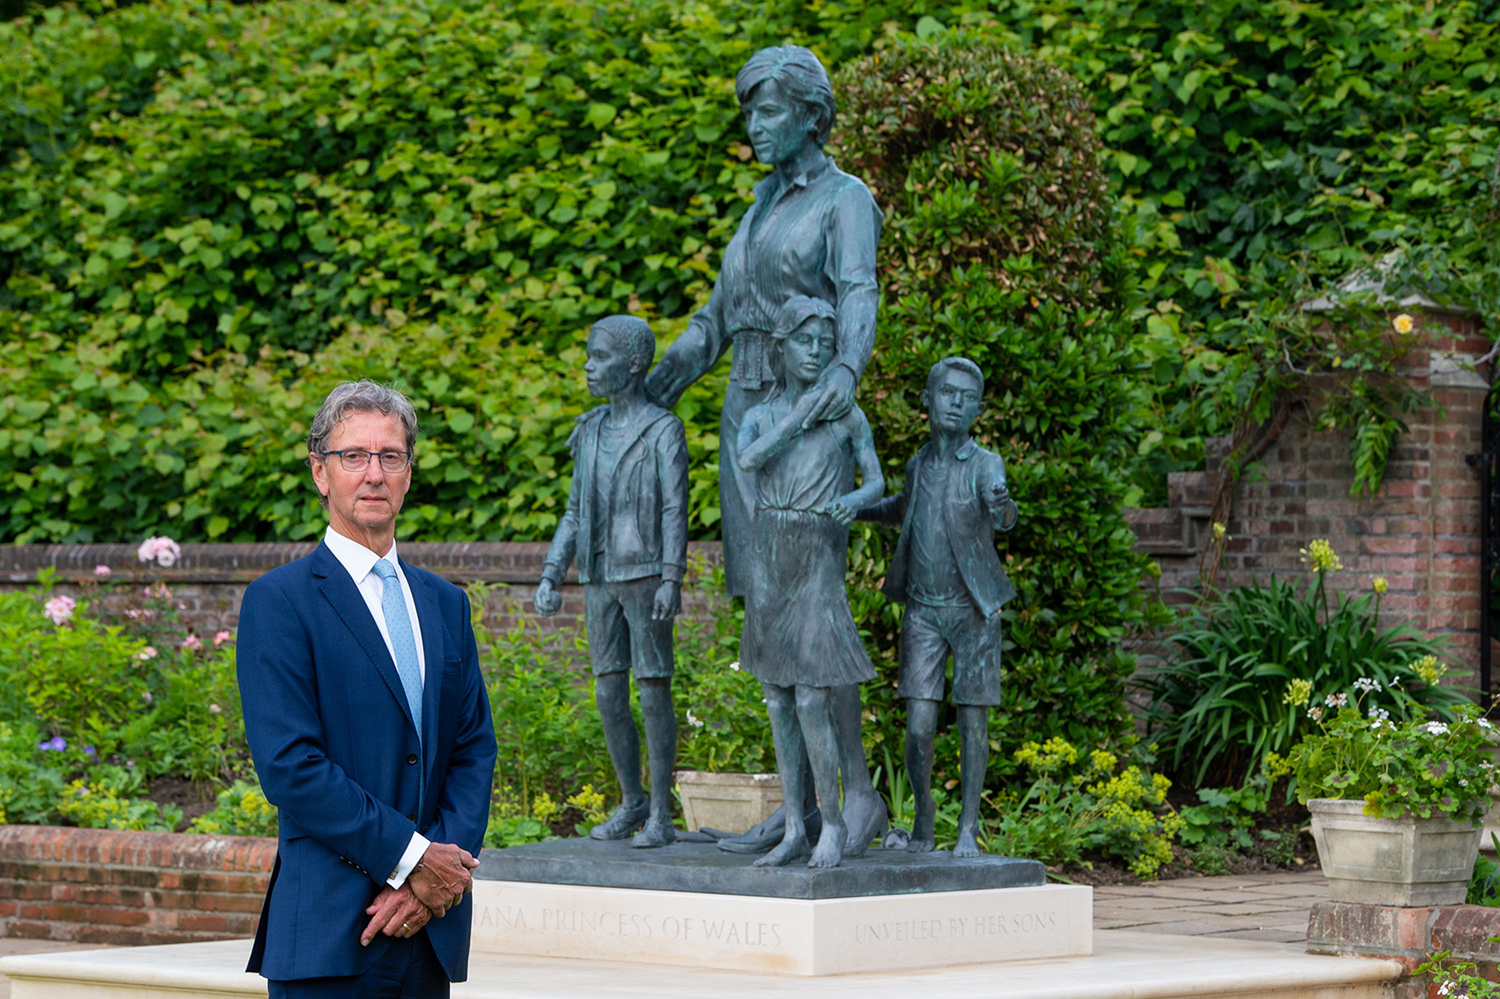 This is What Princess Diana's Sculpture at the Kensington Palace Signifies